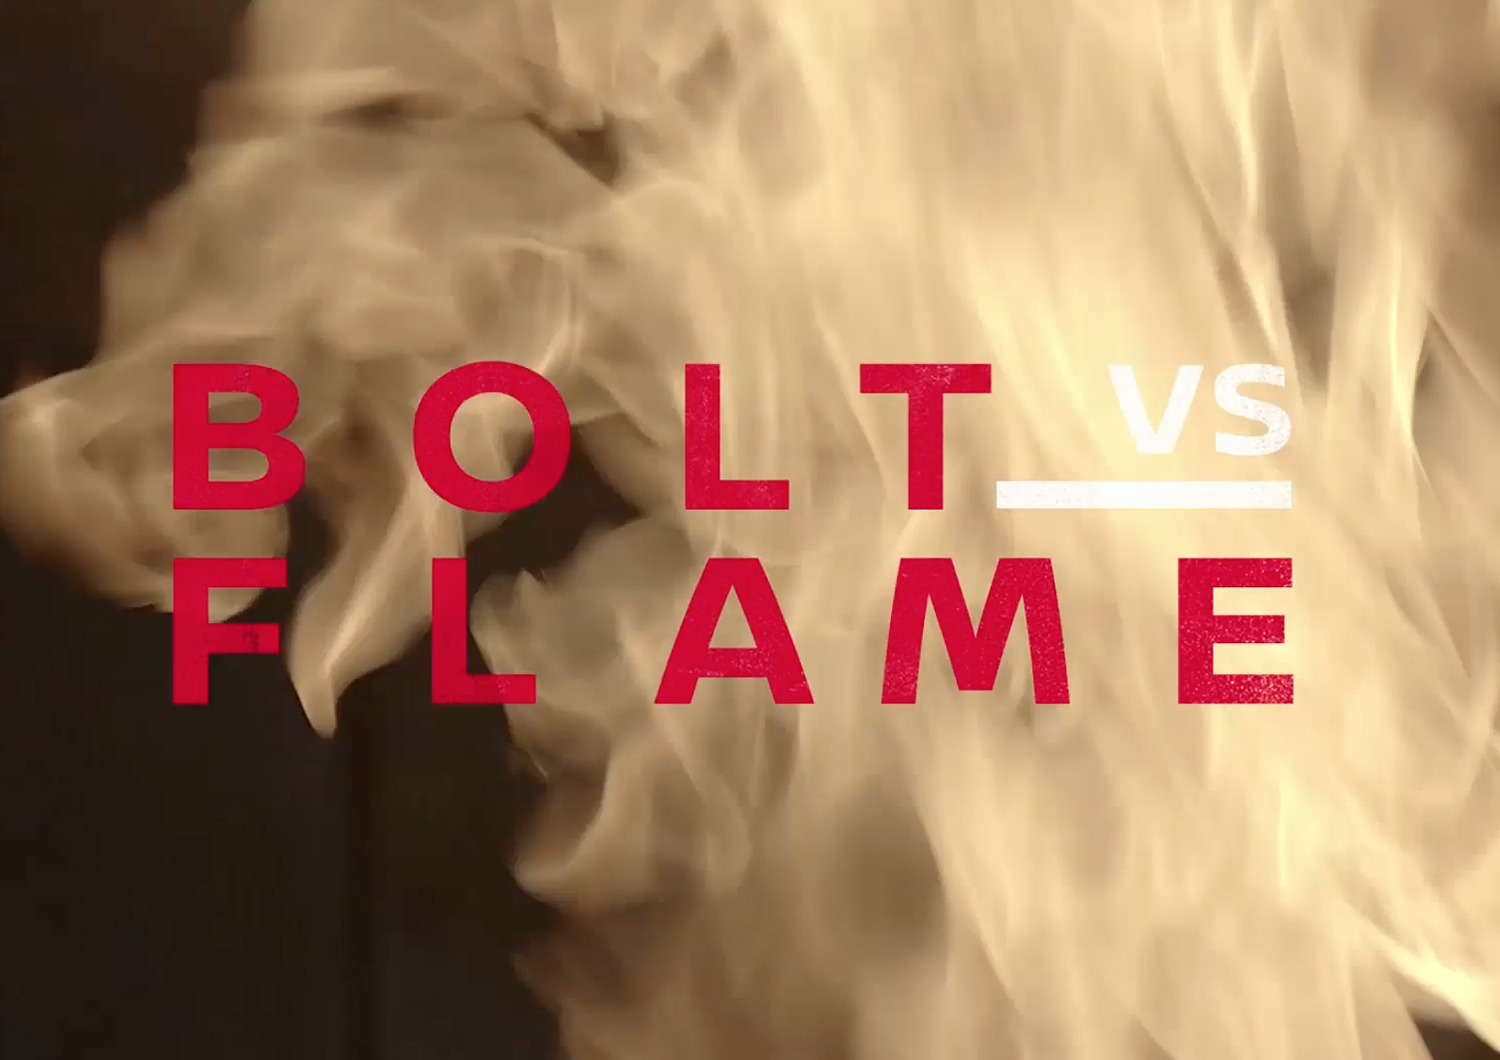 Bolt vs Flame